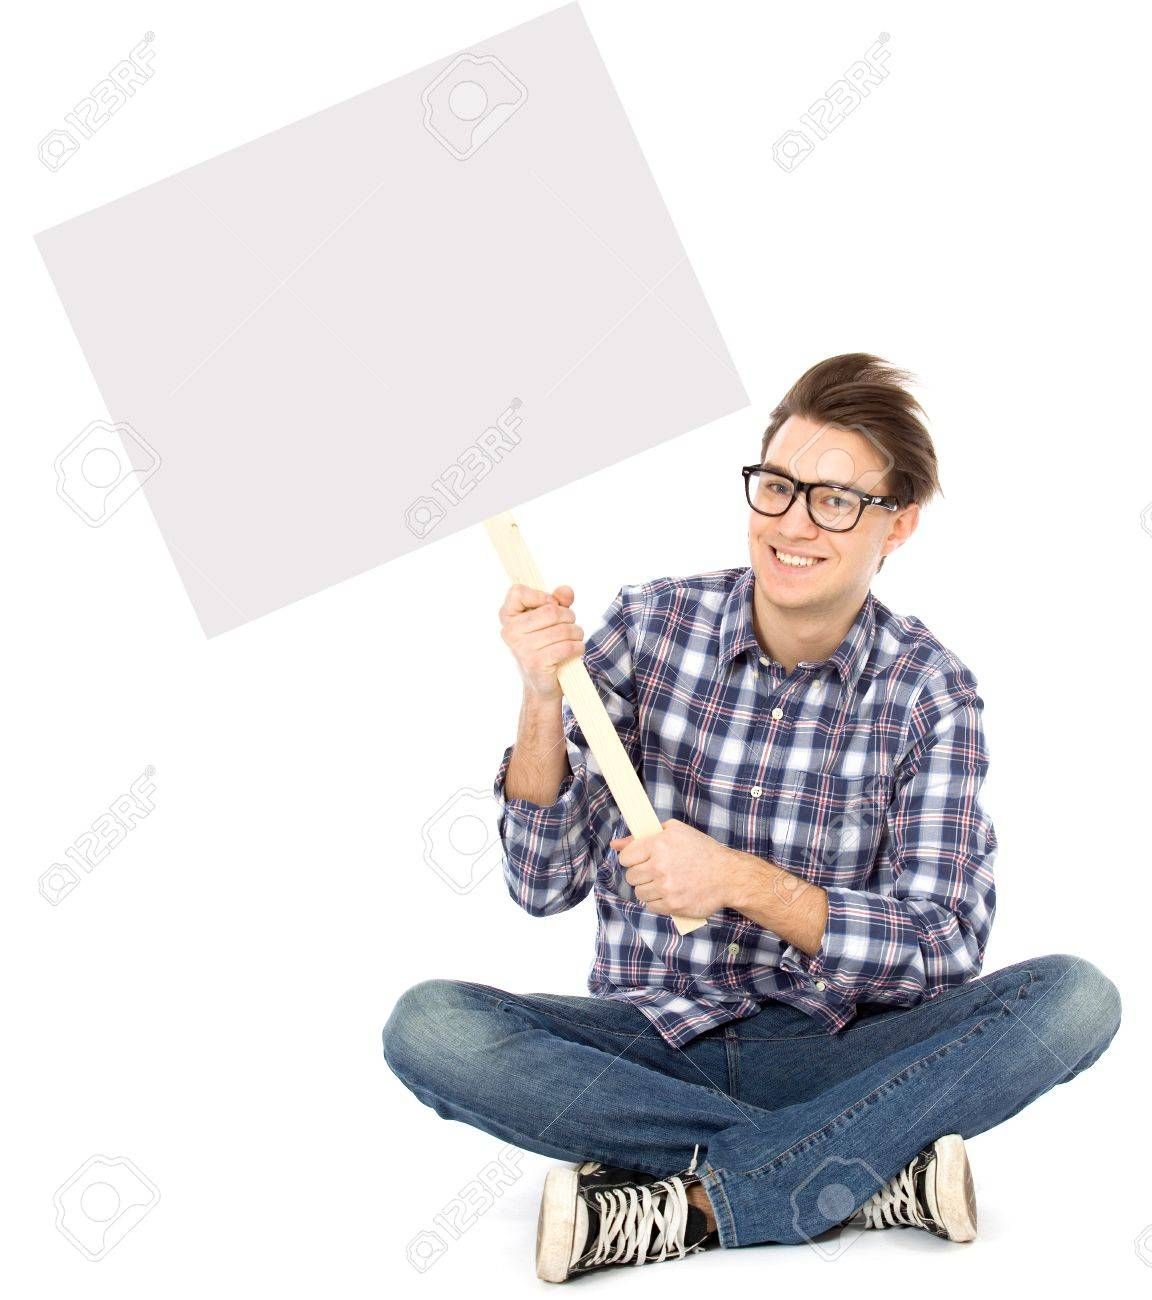 Young man holding blank poster Stock Photo - 8888105